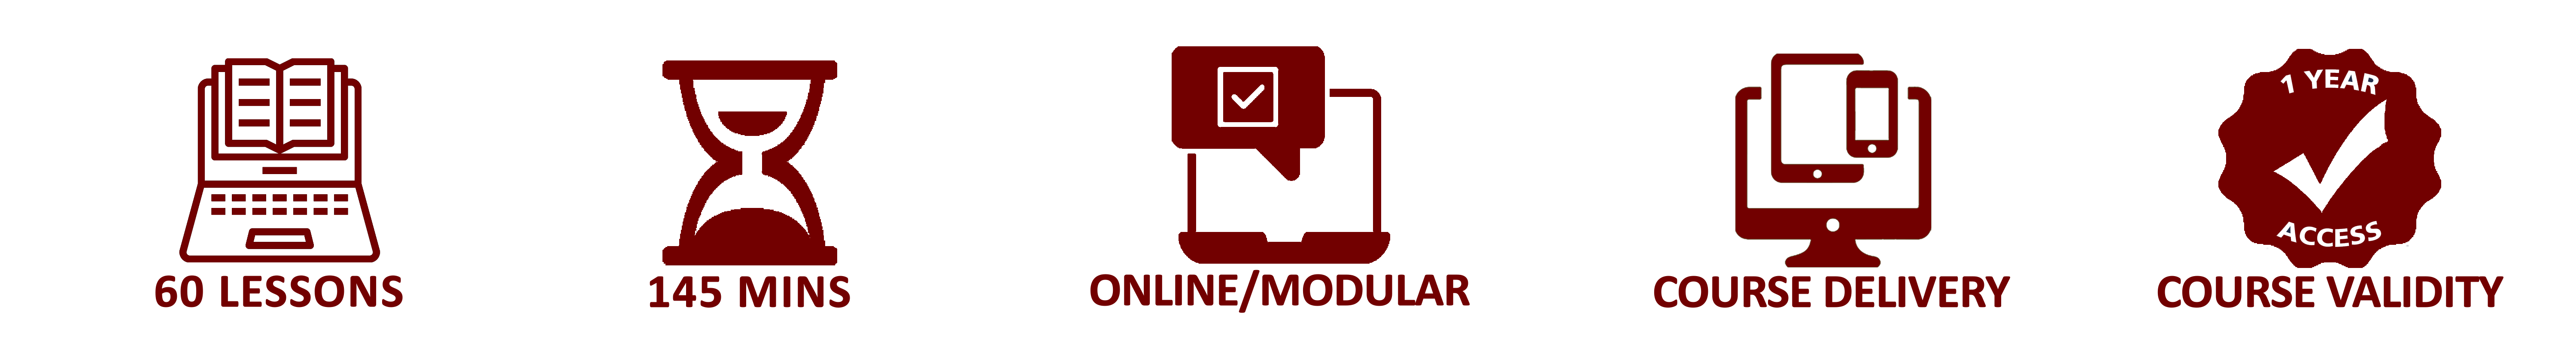 Team Management Essentials - Online Training Course - CPD Accredited - Mandatory Compliance UK -